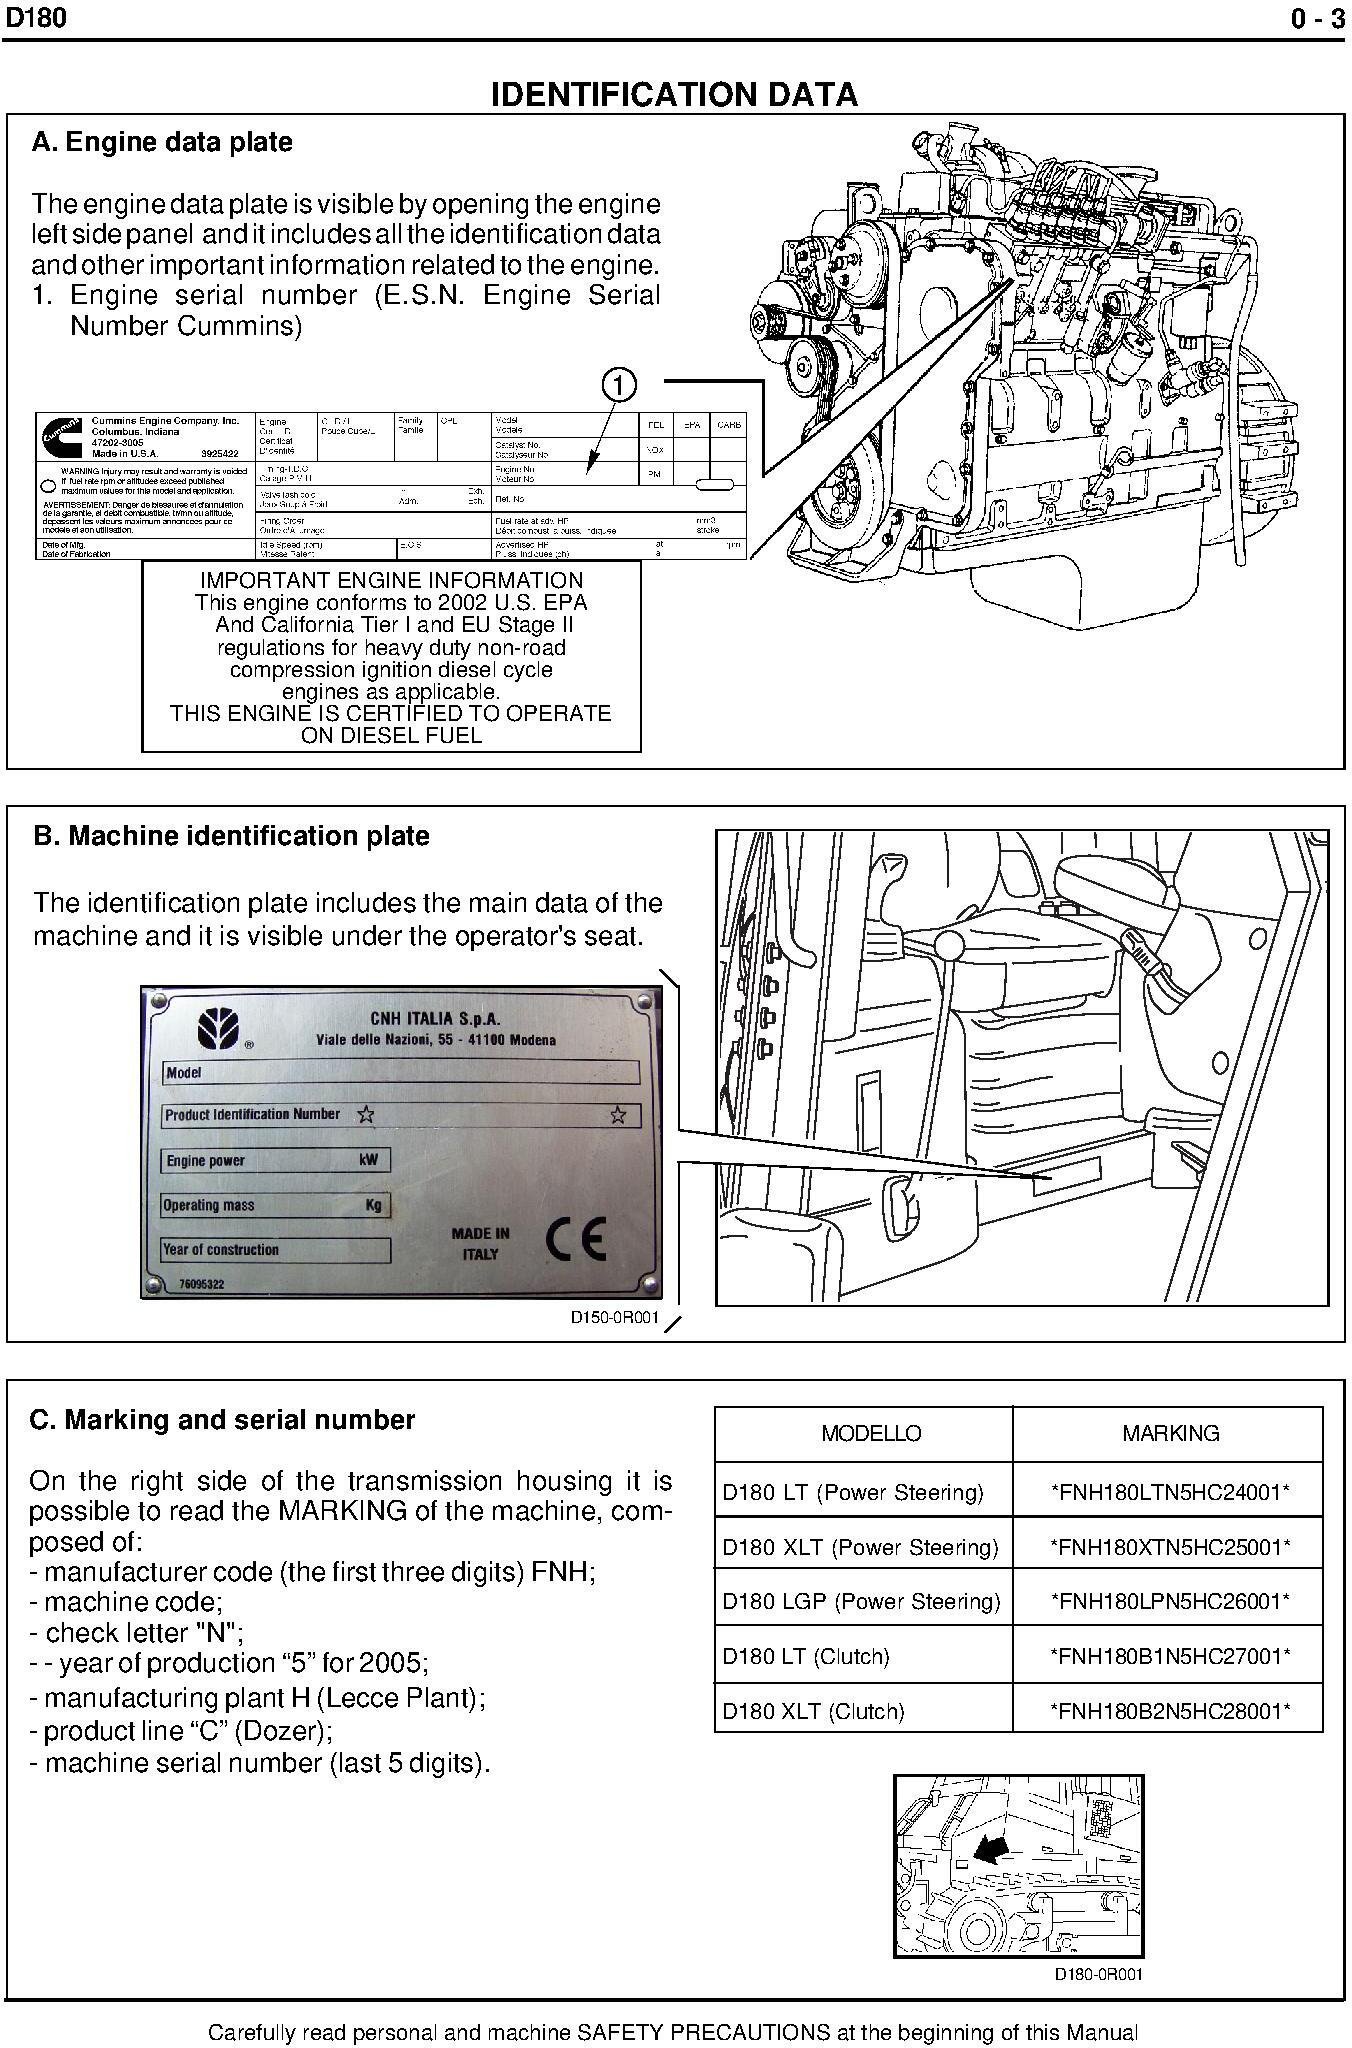 New Holland D180 Crawler Dozer Service Manual - 1